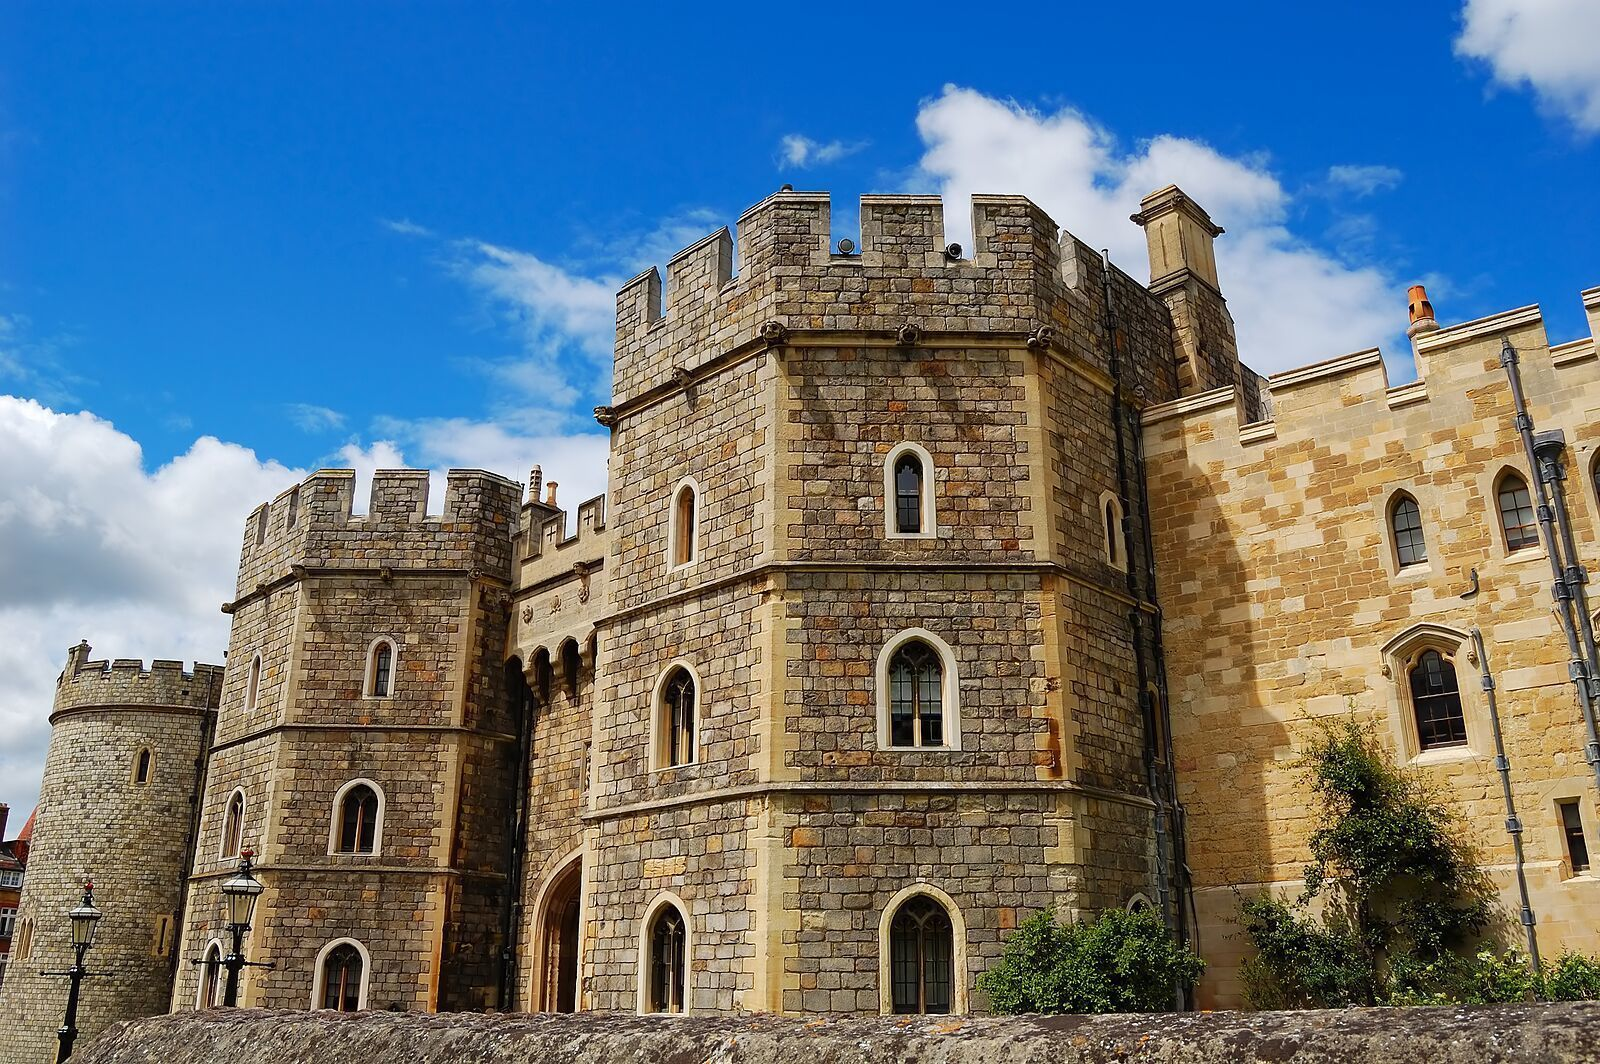 bigstock-Gates-of-Windsor-Castle-in-Eng-26562059_preview.jpeg